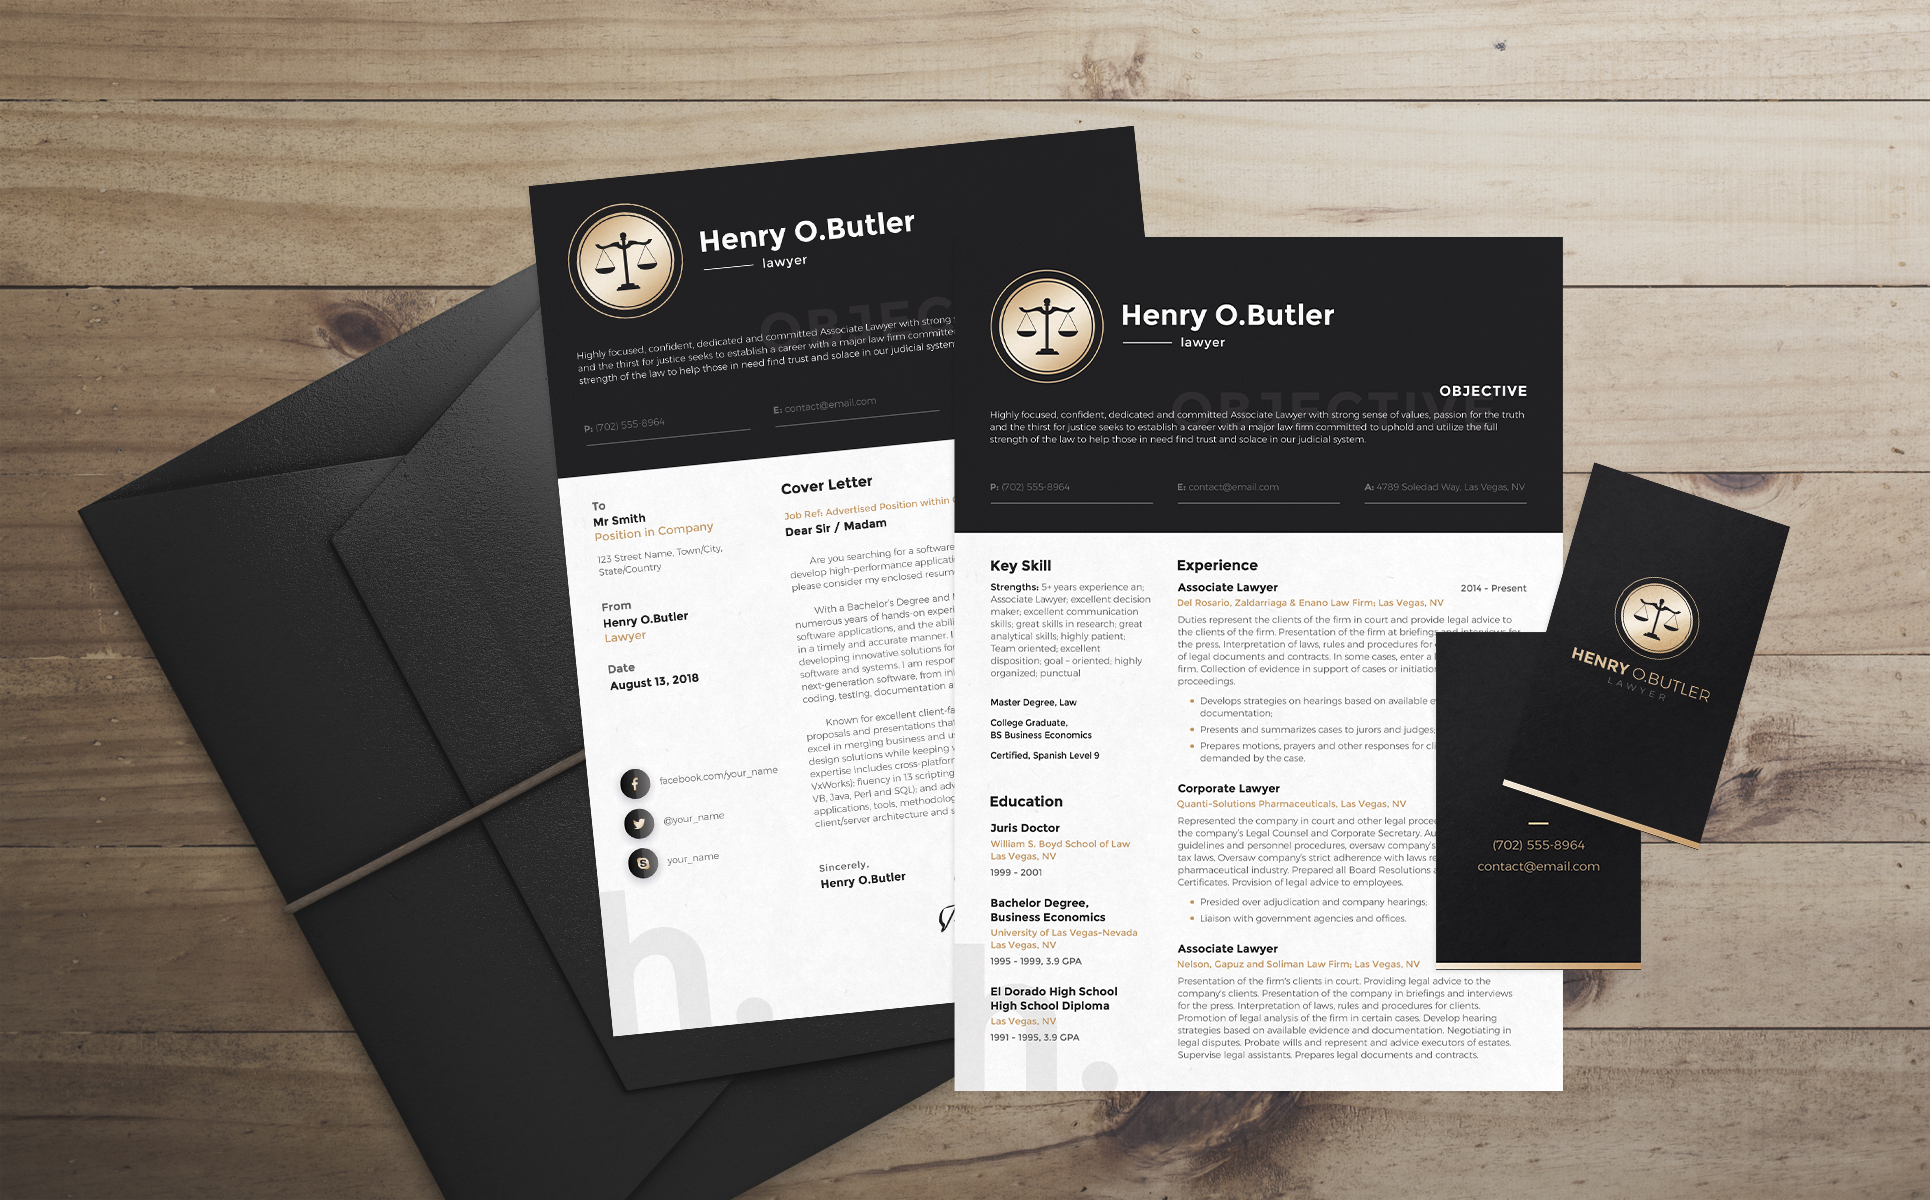 Henry O. Butler - Lawyer Resume Template